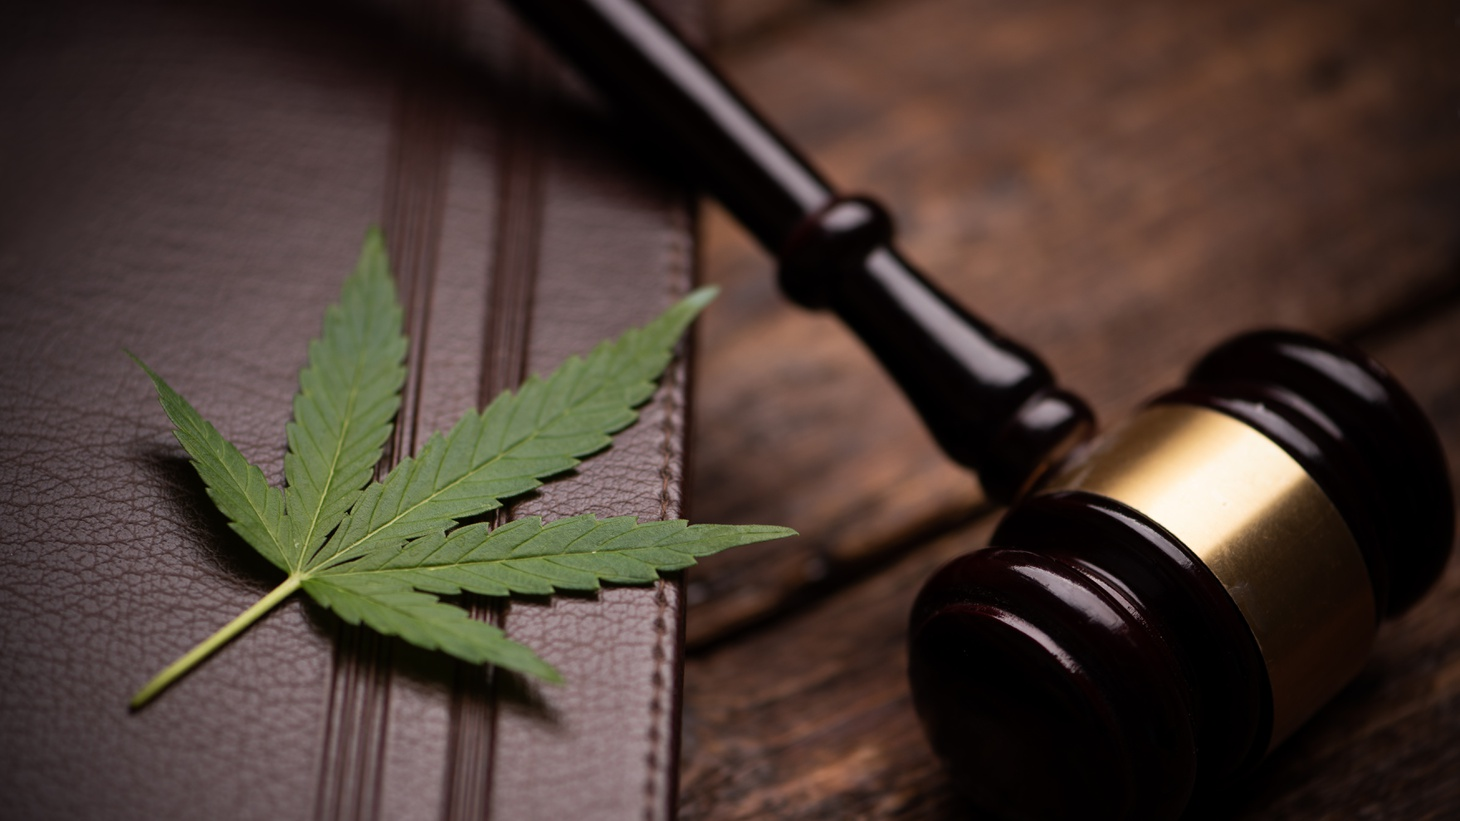 Tens of thousands of Angelenos with cannabis convictions face barriers to education, employment, and housing. Those barriers may be gone, as LA County District Attorney George Gascon has announced plans to dismiss almost 60,000 cannabis convictions.